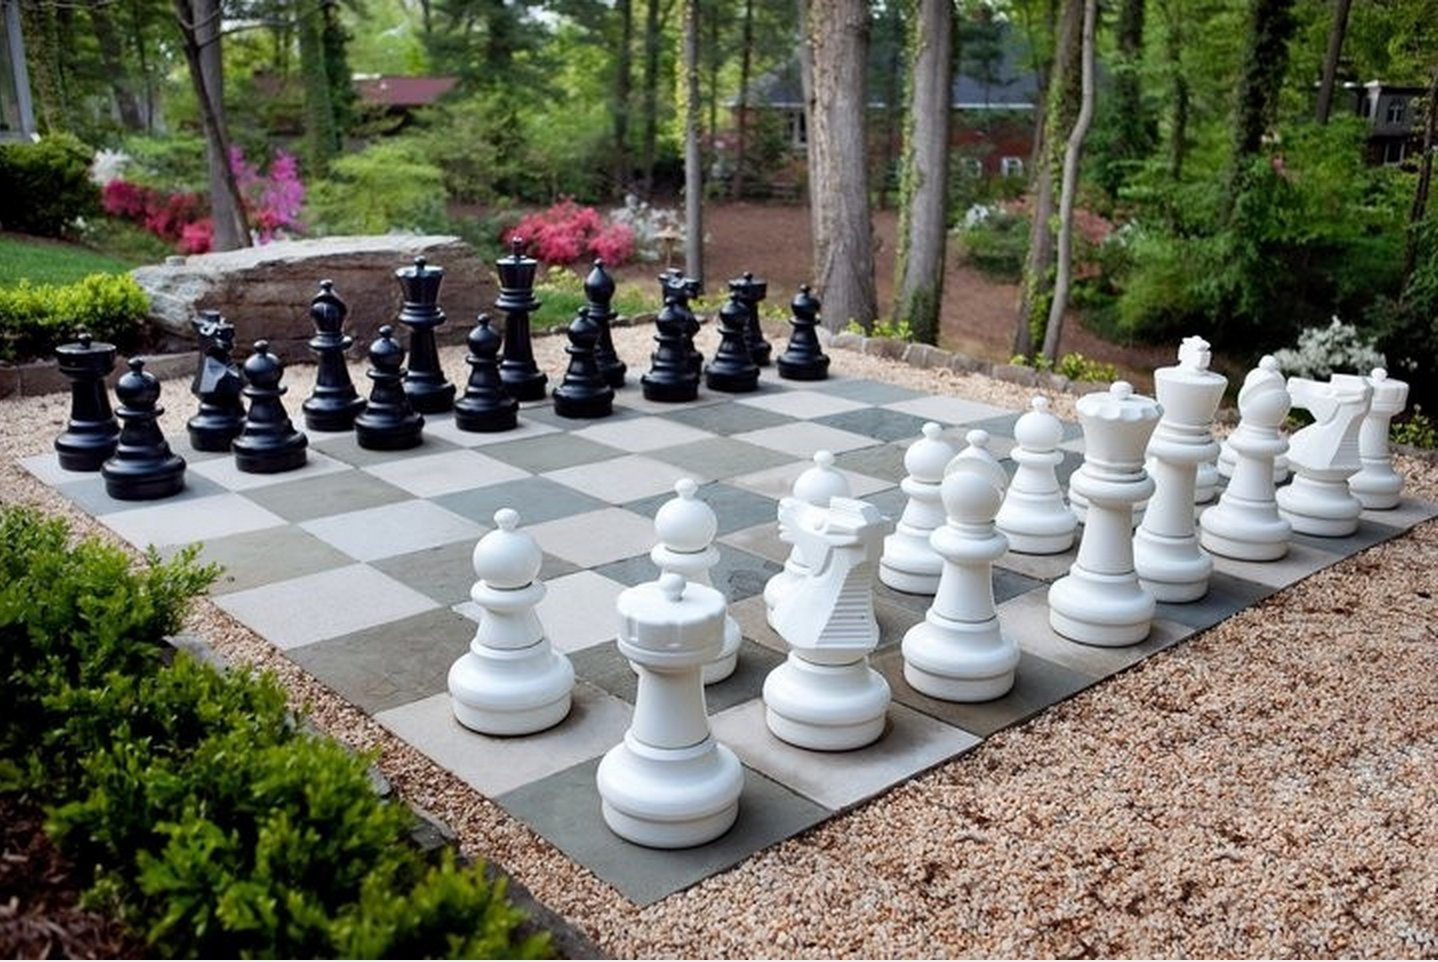 MegaChess Giant Premium Chess Pieces Complete Set with 25 Inch Tall King Black and White by MegaChess